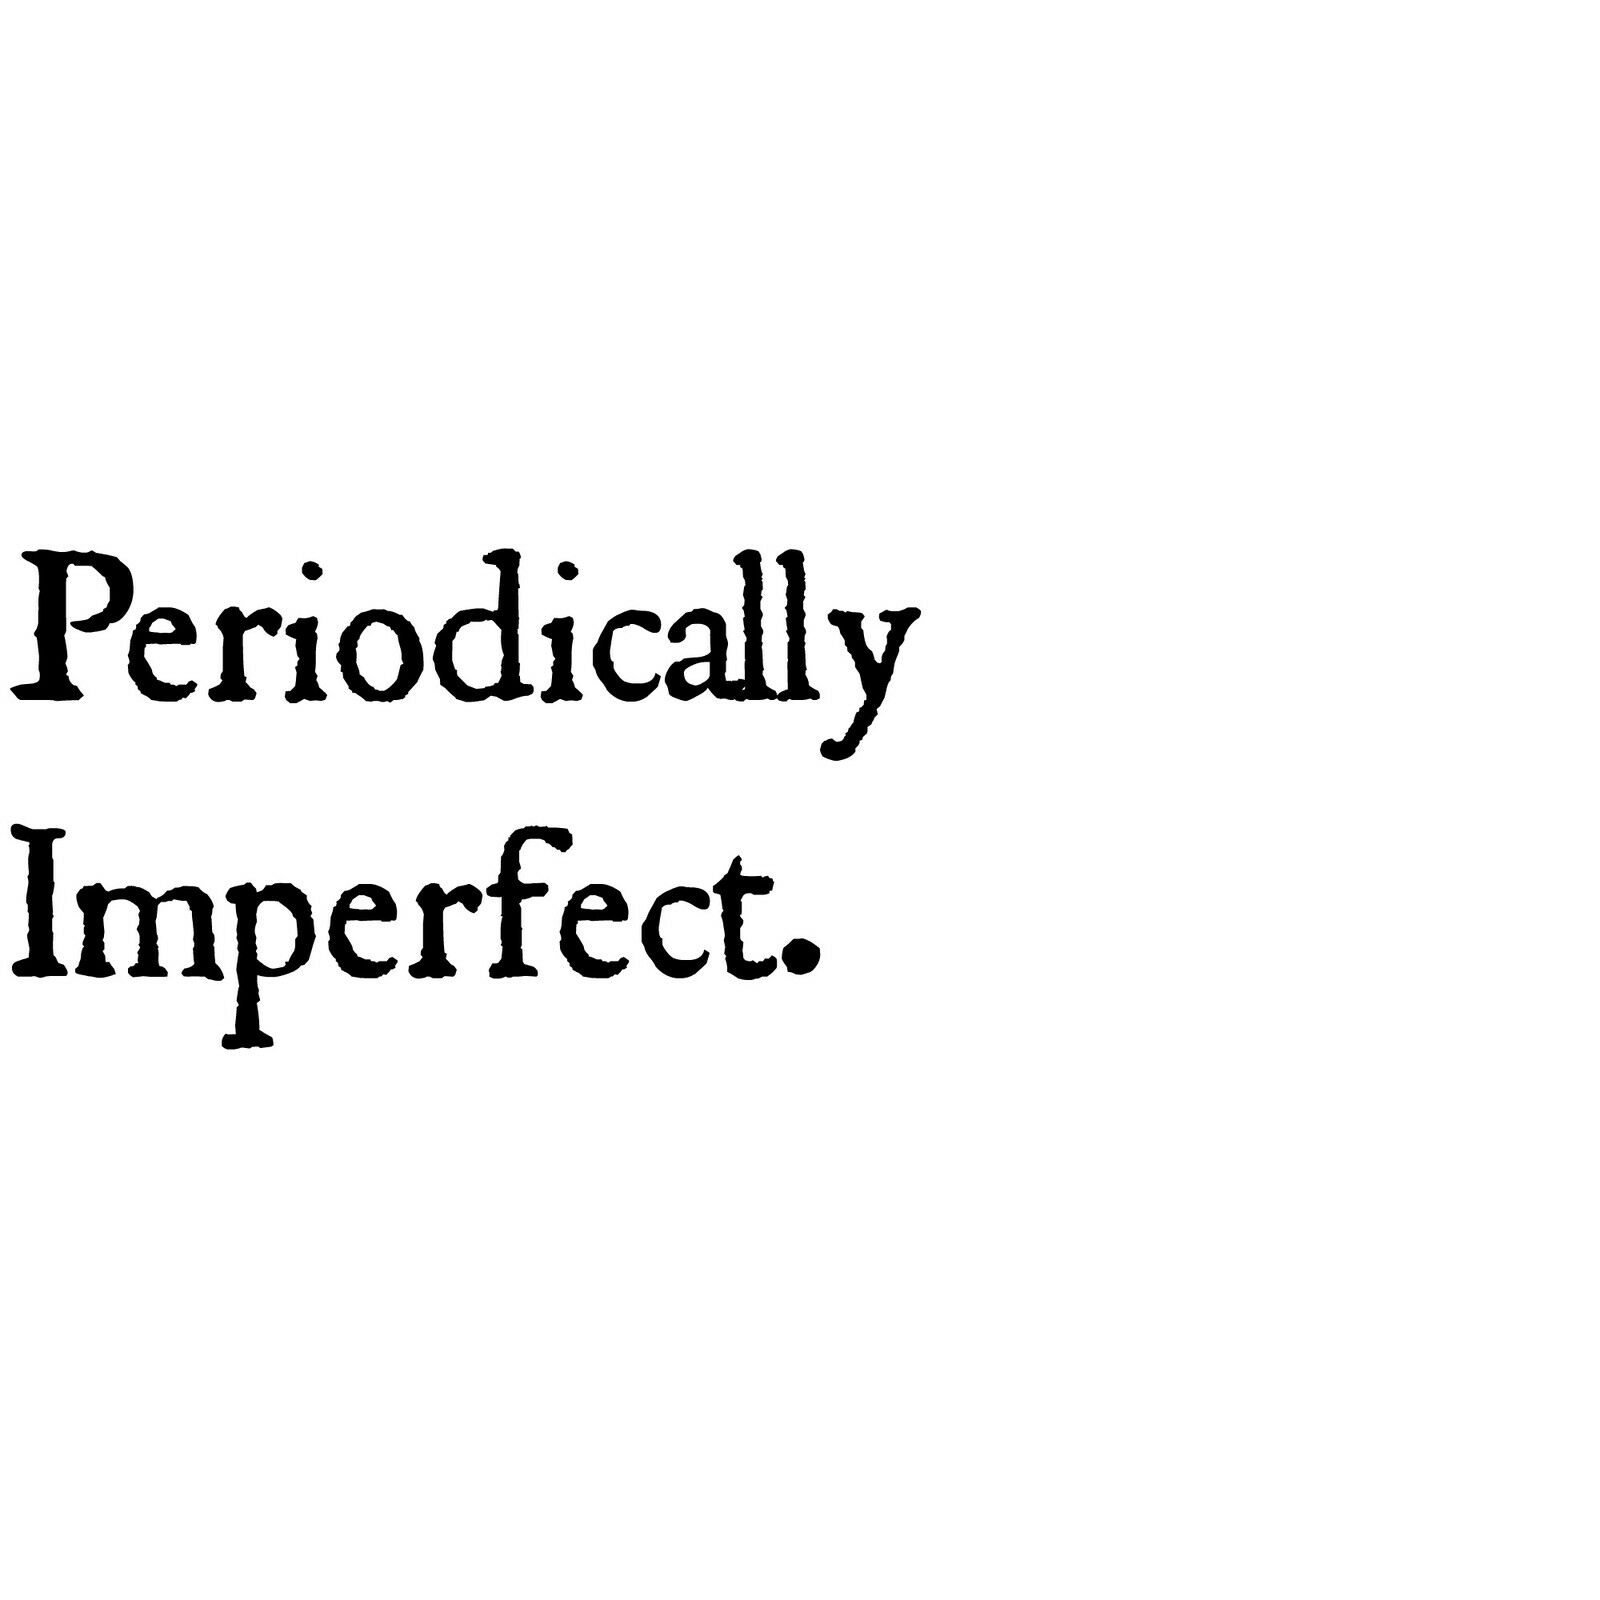 Periodically Imperfect